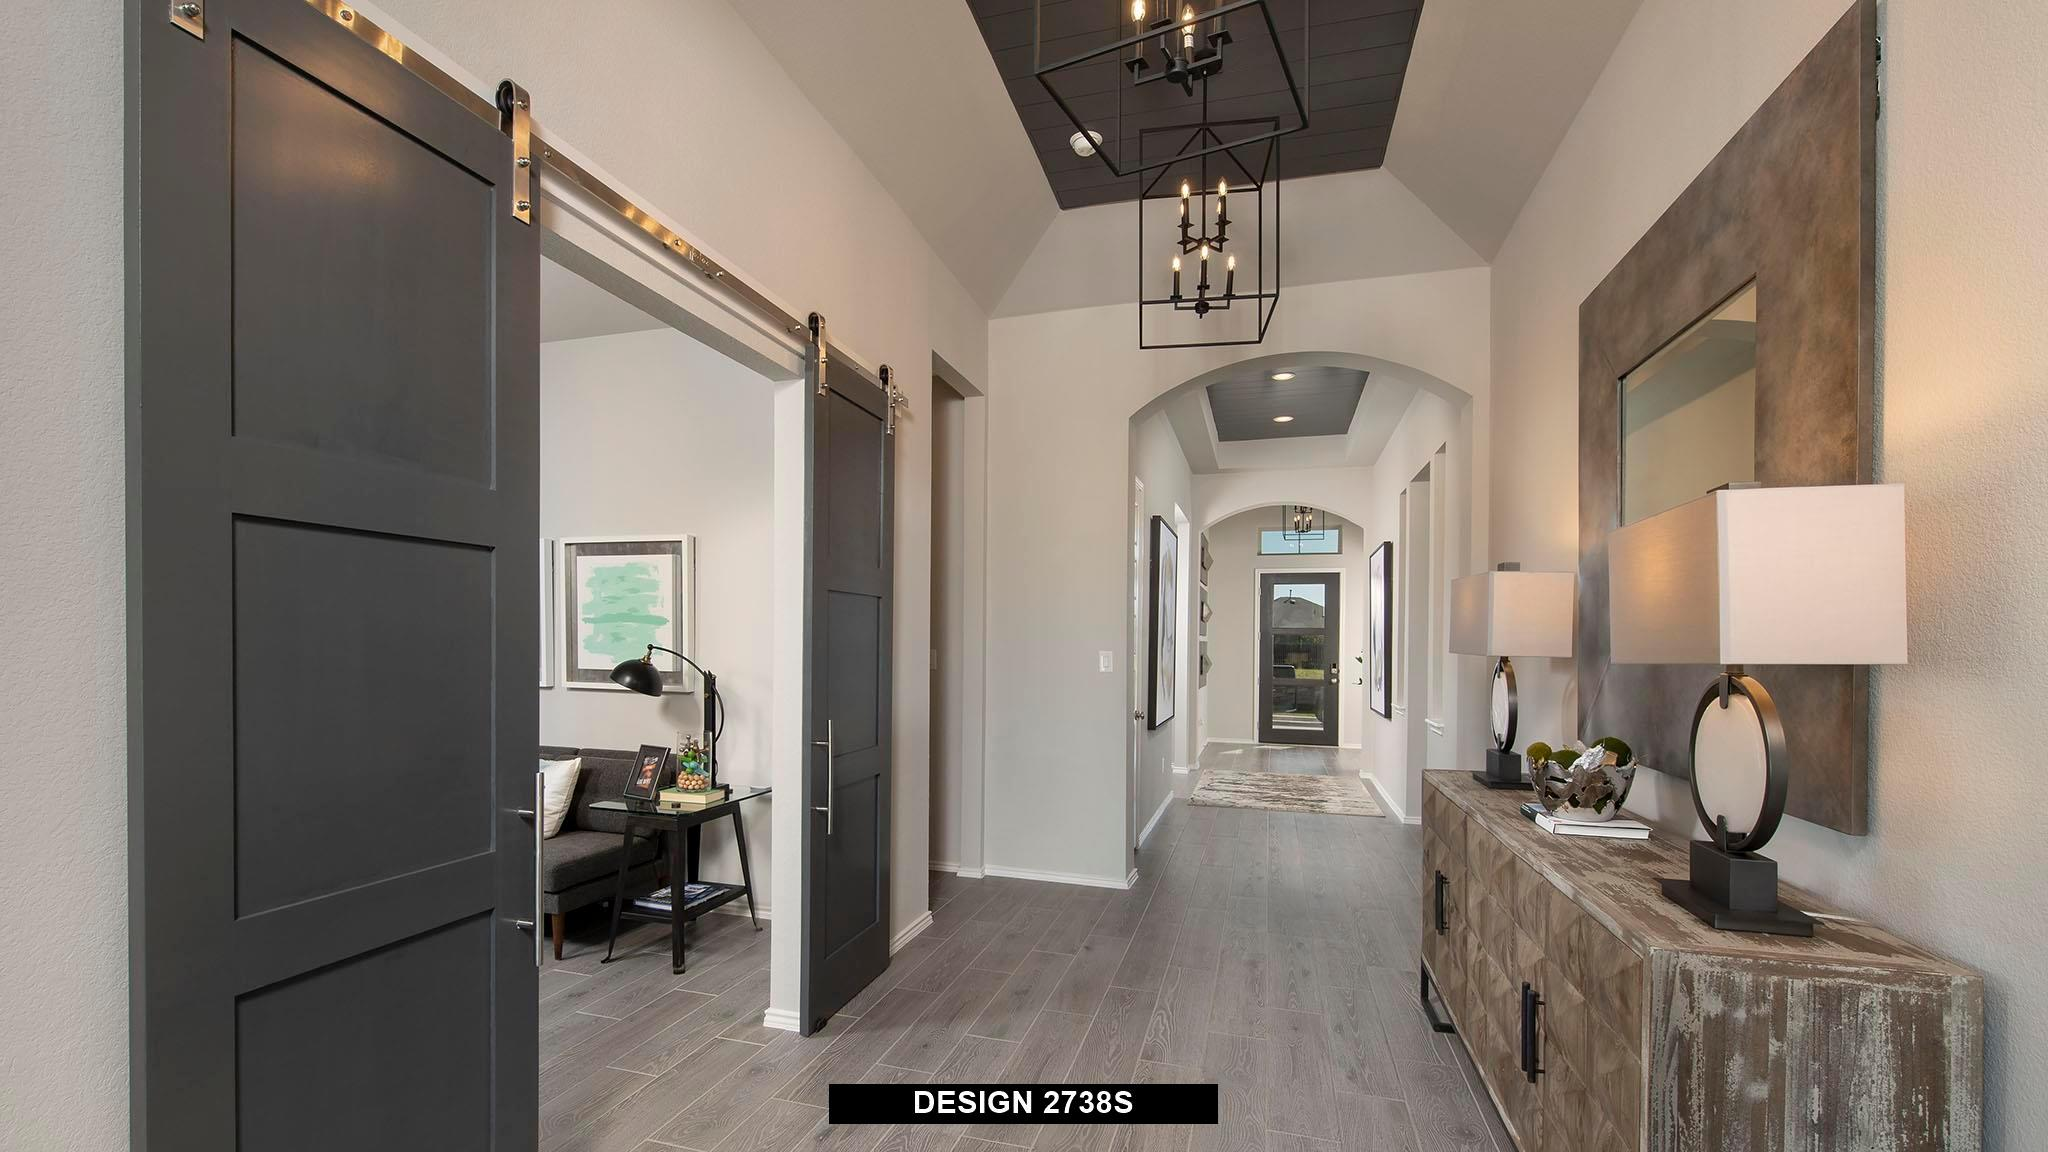 Living Area featured in the 2738S By Perry Homes in San Antonio, TX